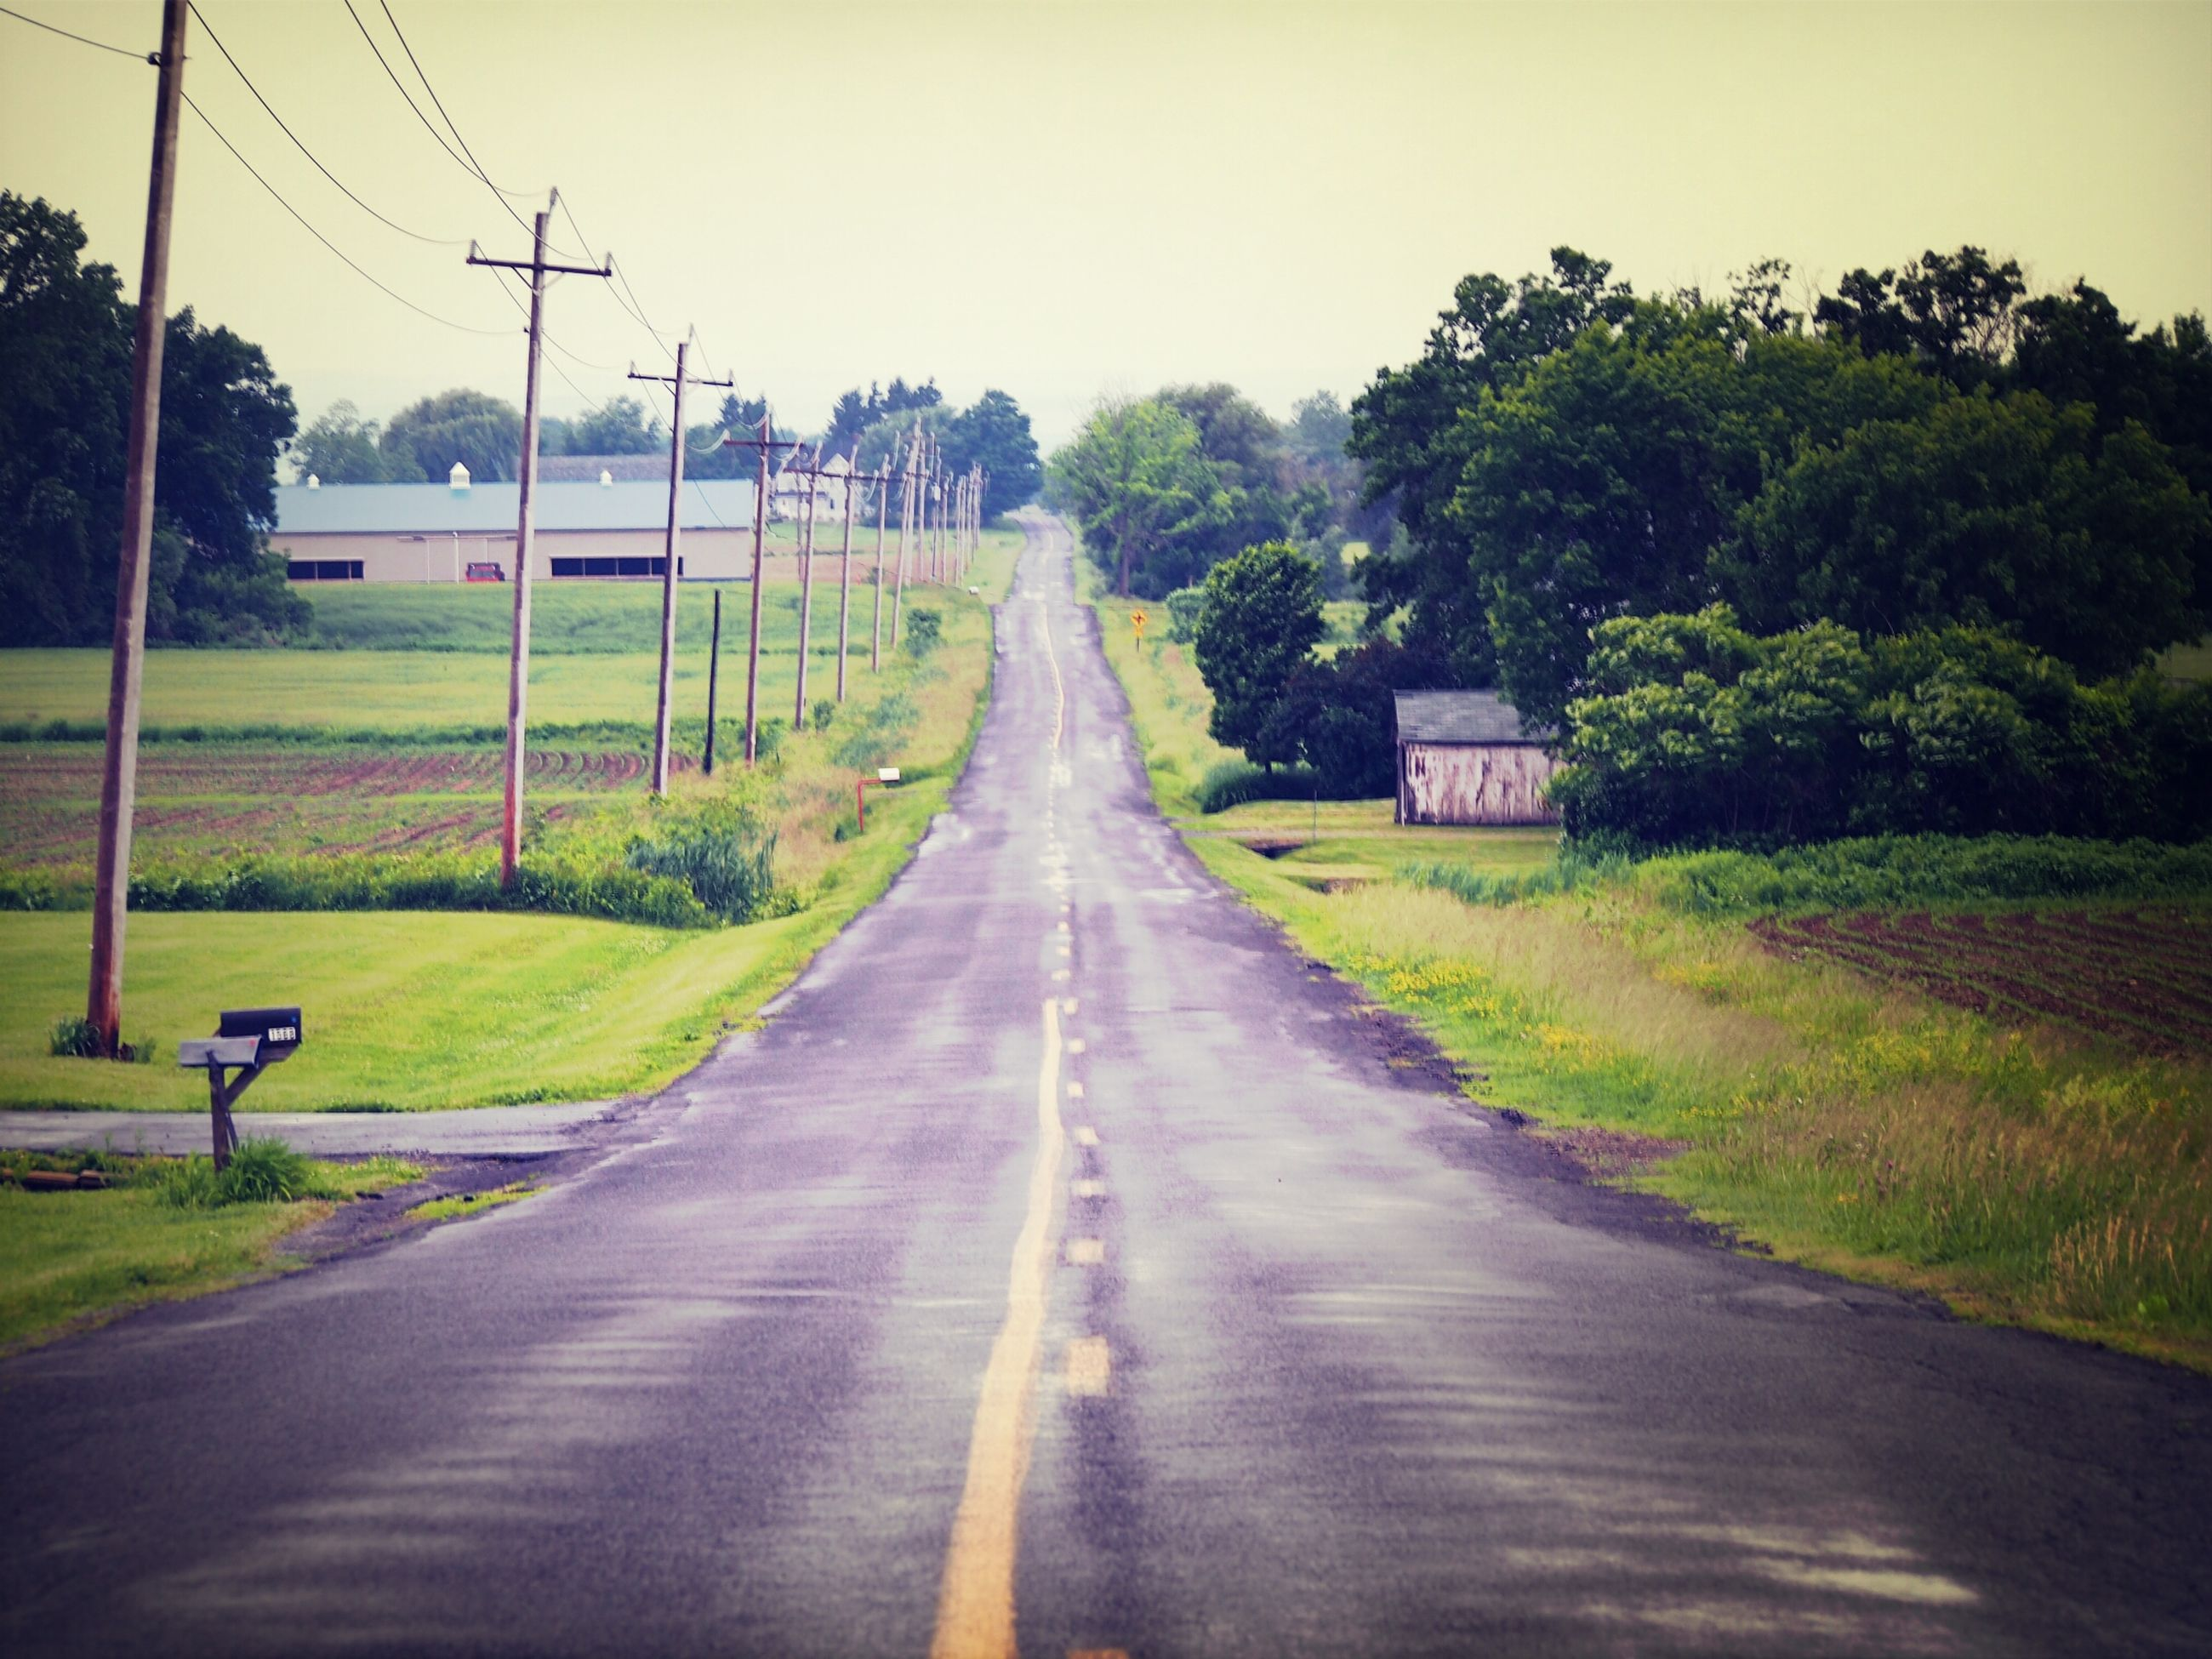 the way forward, diminishing perspective, transportation, vanishing point, road, country road, grass, tree, landscape, field, clear sky, electricity pylon, long, sky, road marking, green color, dirt road, tranquility, nature, empty road